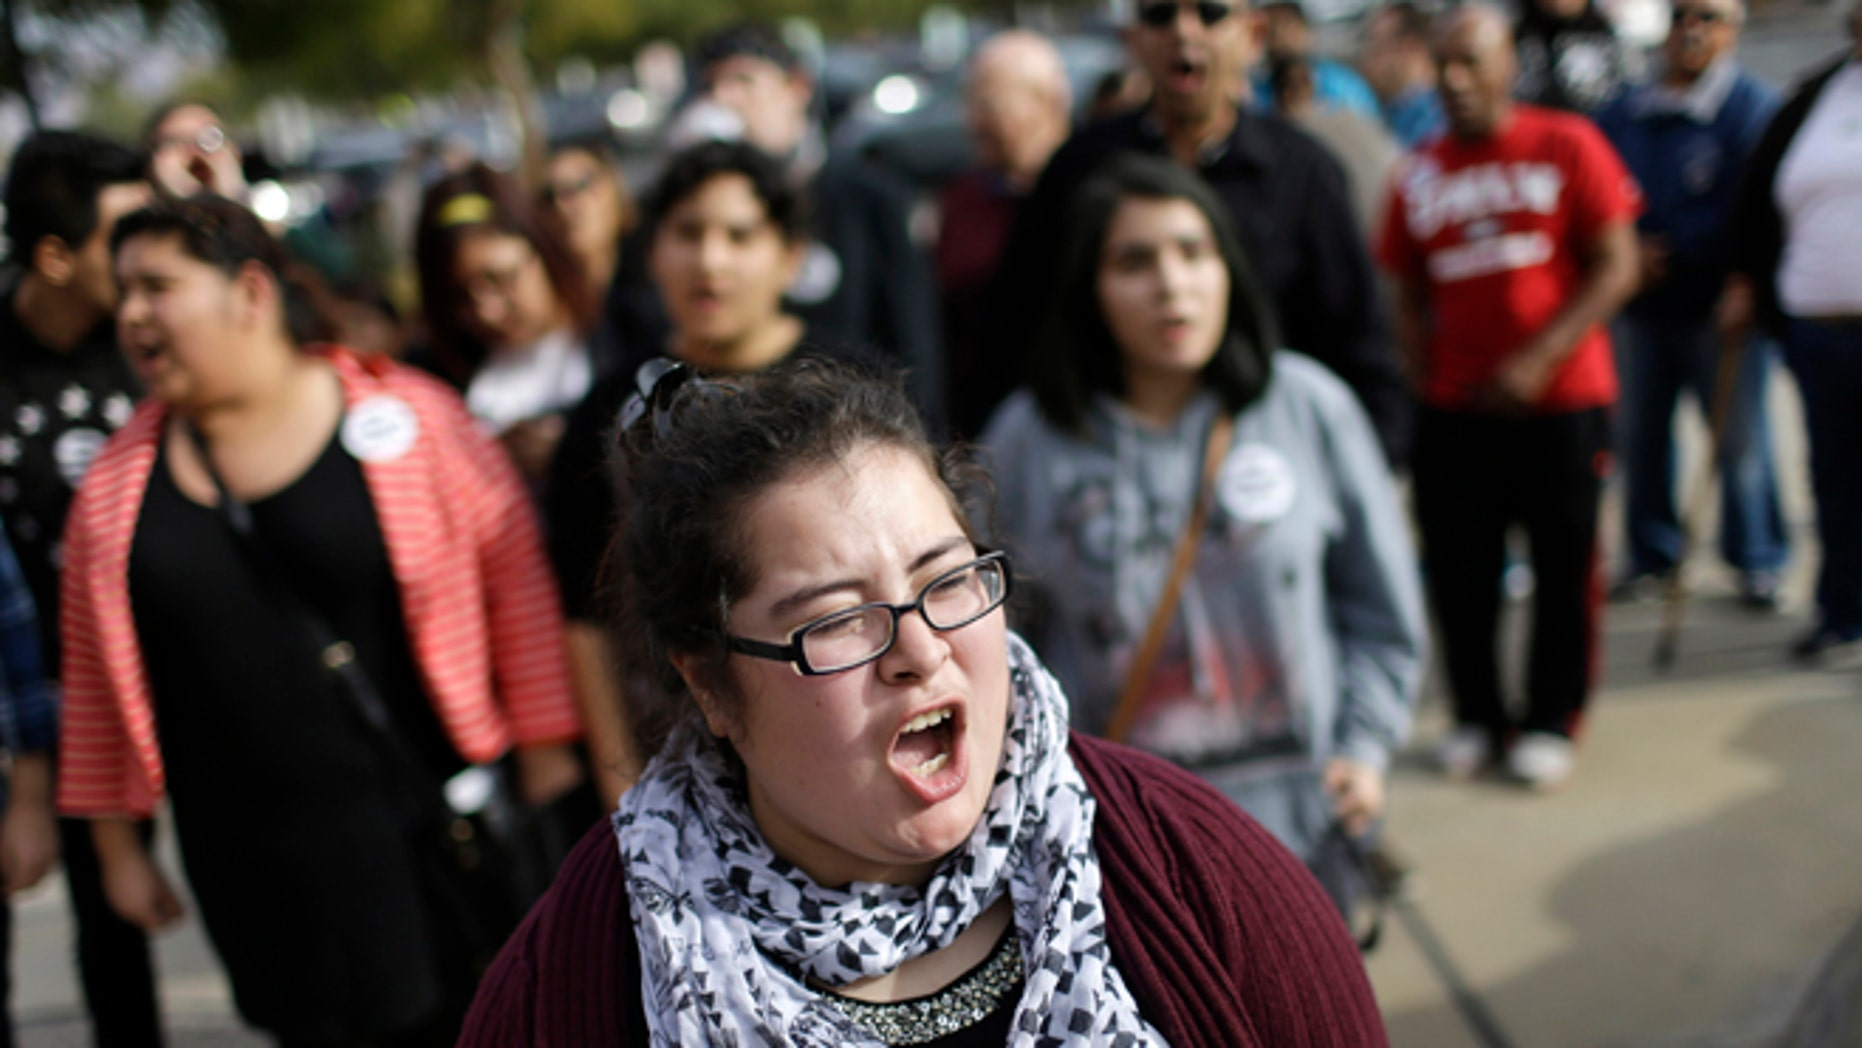 Dulce Valencia and others chant during a protest Wednesday, Jan. 28, 2015, in Las Vegas. A group was demanding that Nevada Attorney General Adam Laxalt drop a lawsuit against President Barack Obama's immigration action. (AP Photo/John Locher)